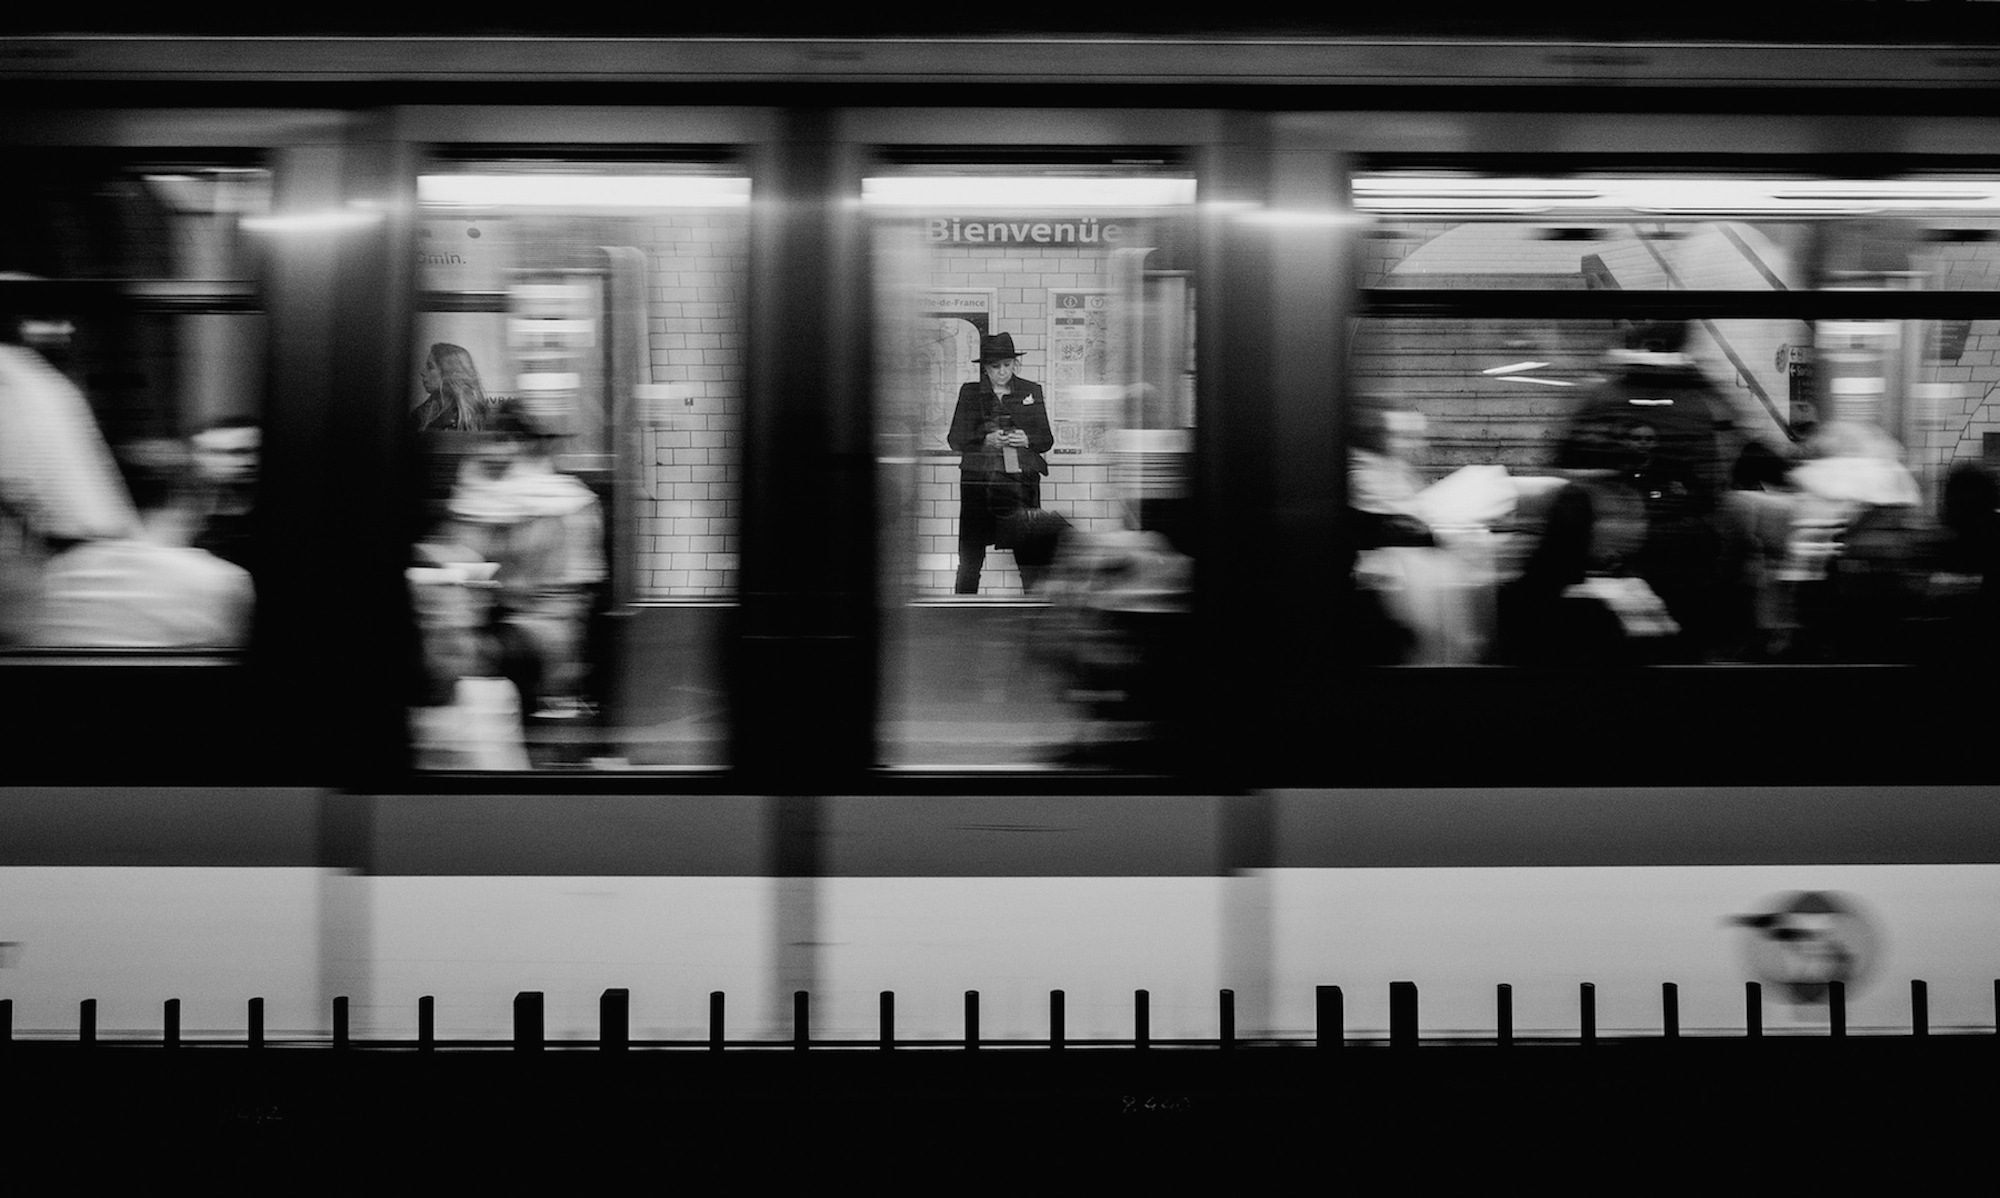 A man stood on a Paris metro platform, seen through the window of a passing metro.